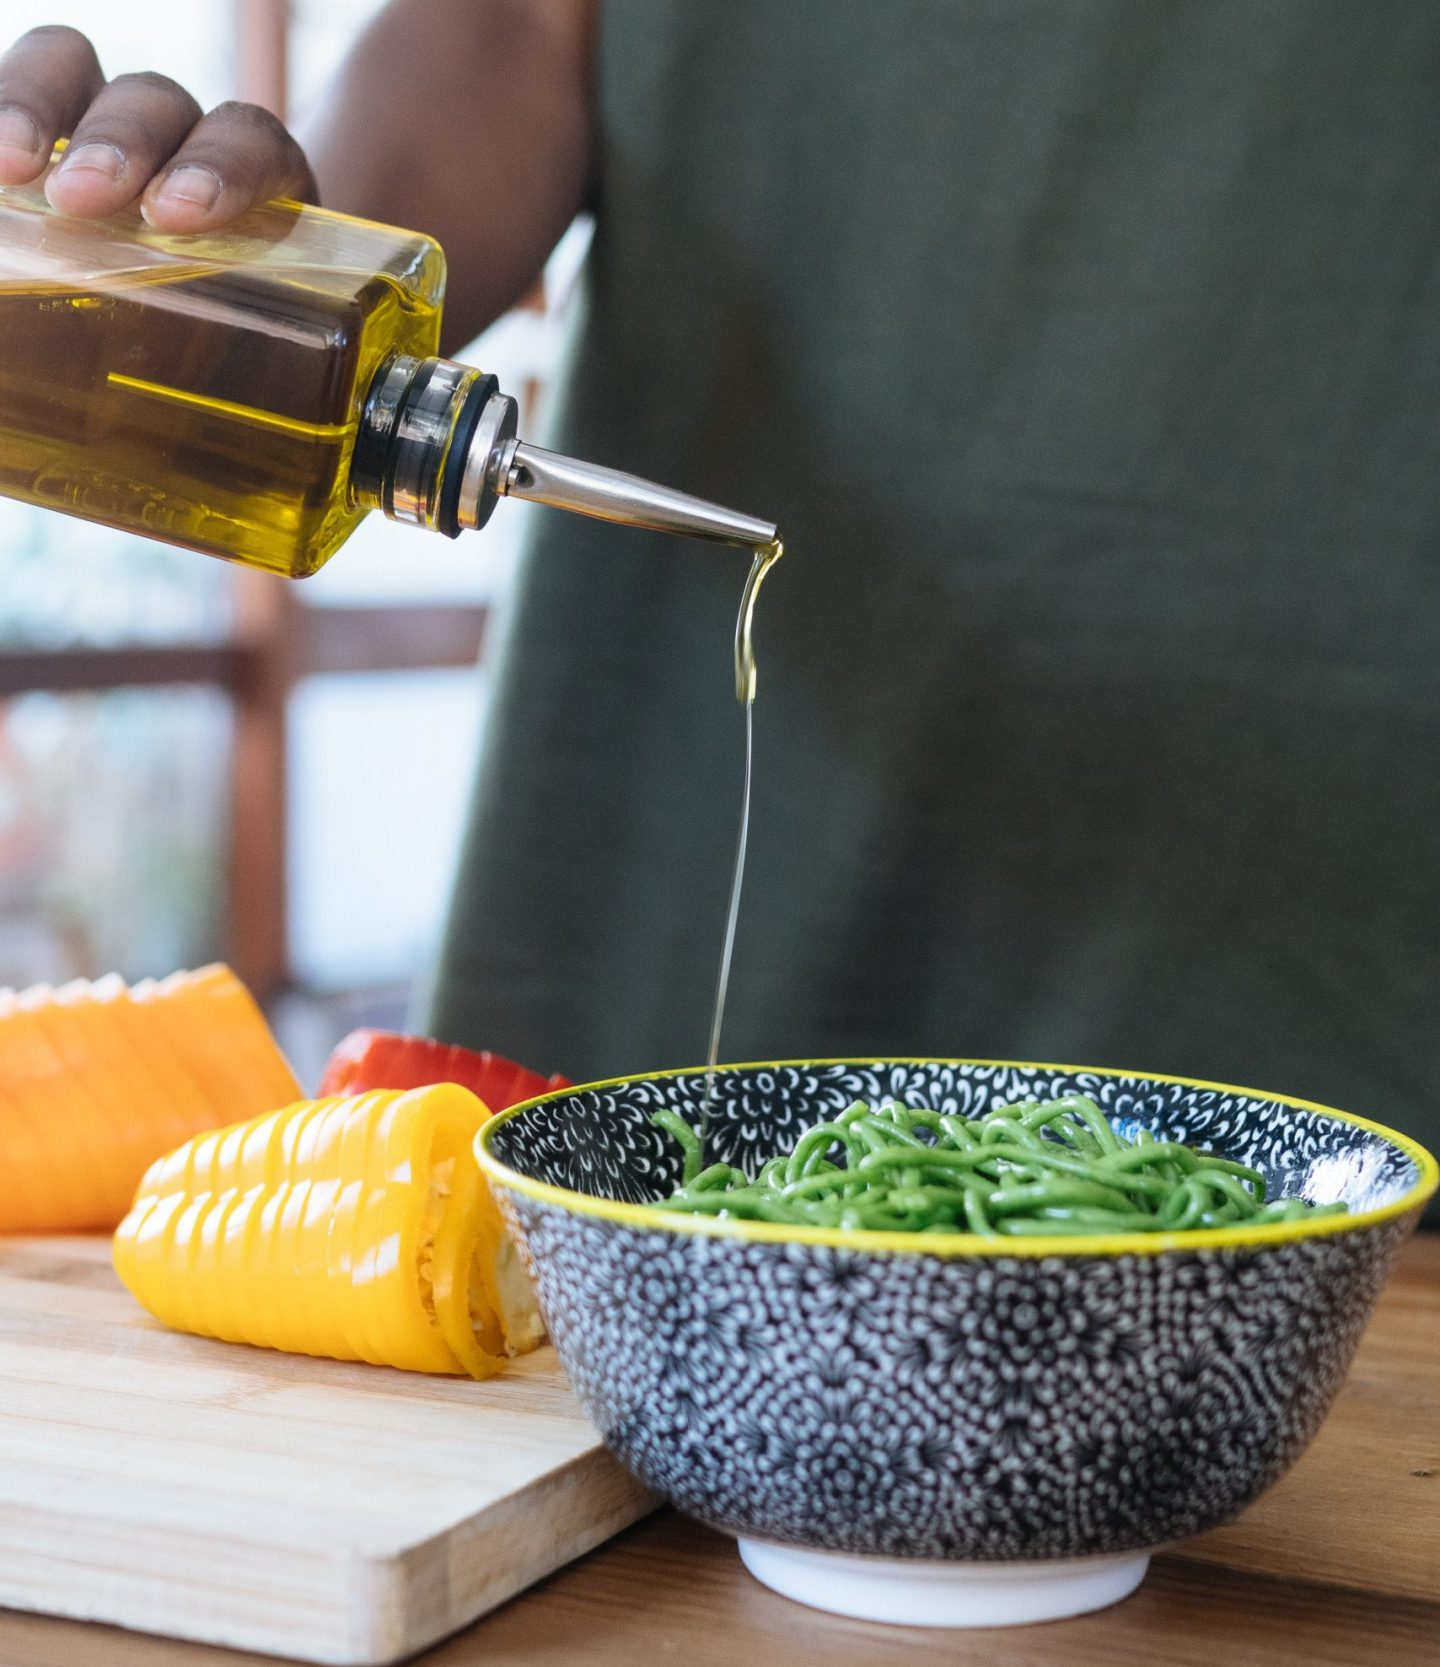 olive oil drizzled on vegetables